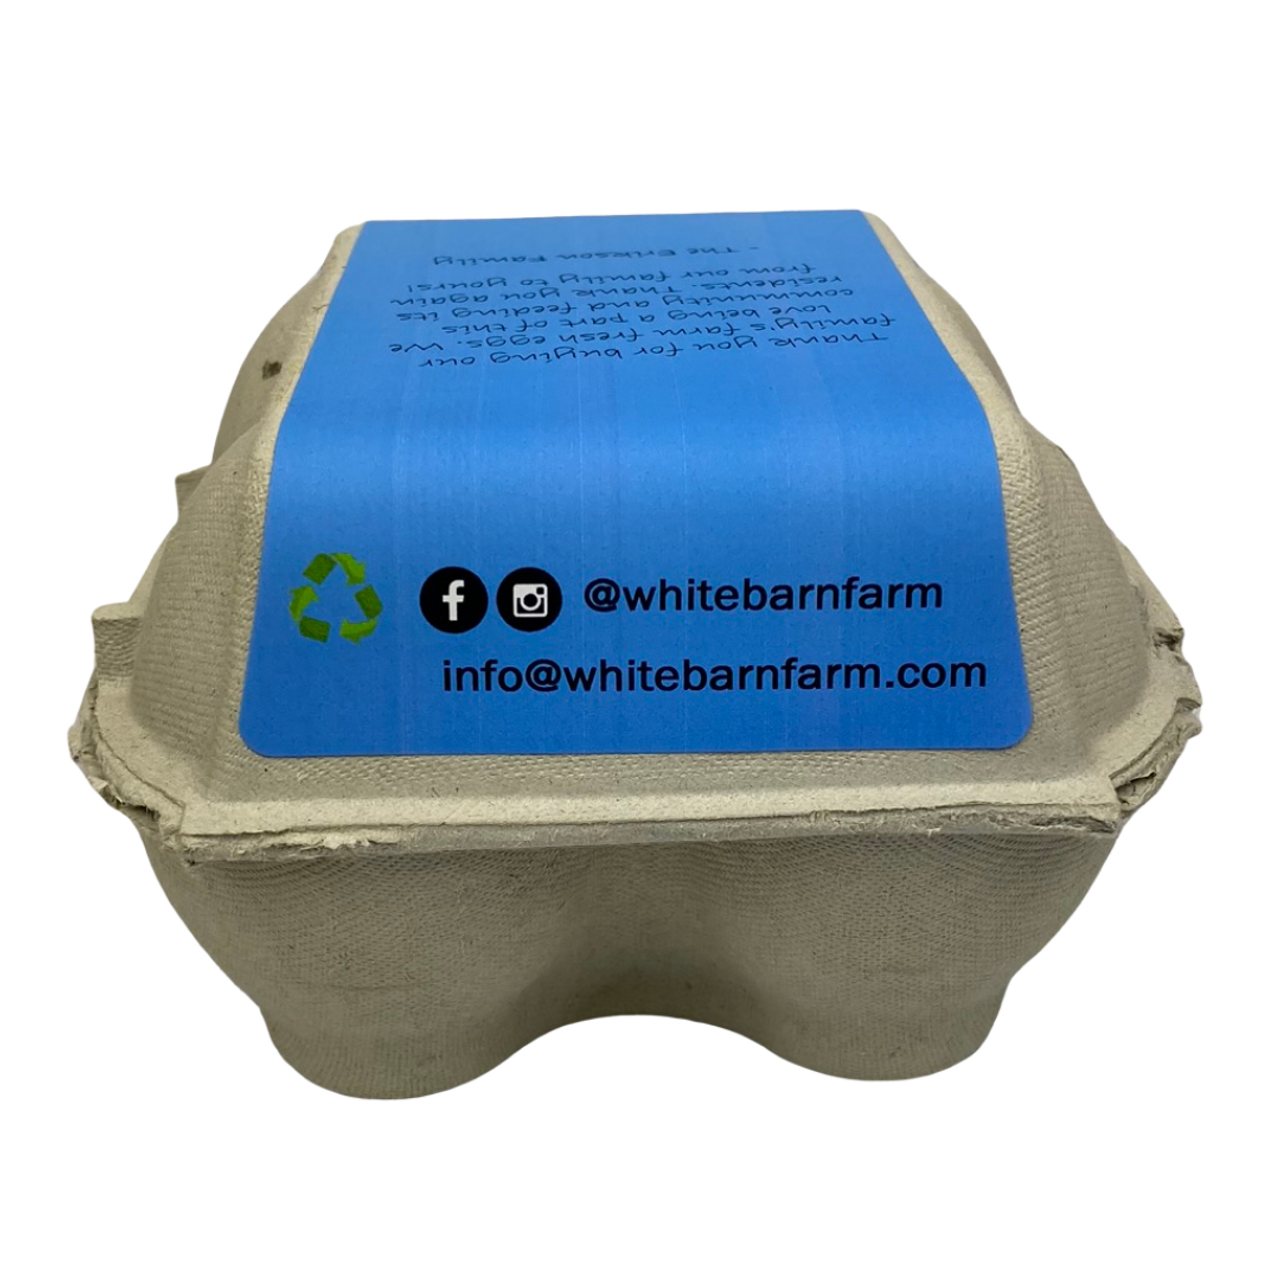 Back view of 4-Egg iMagic Custom Carton Label - Fresh Eggs in Grass attached to paper pulp carton